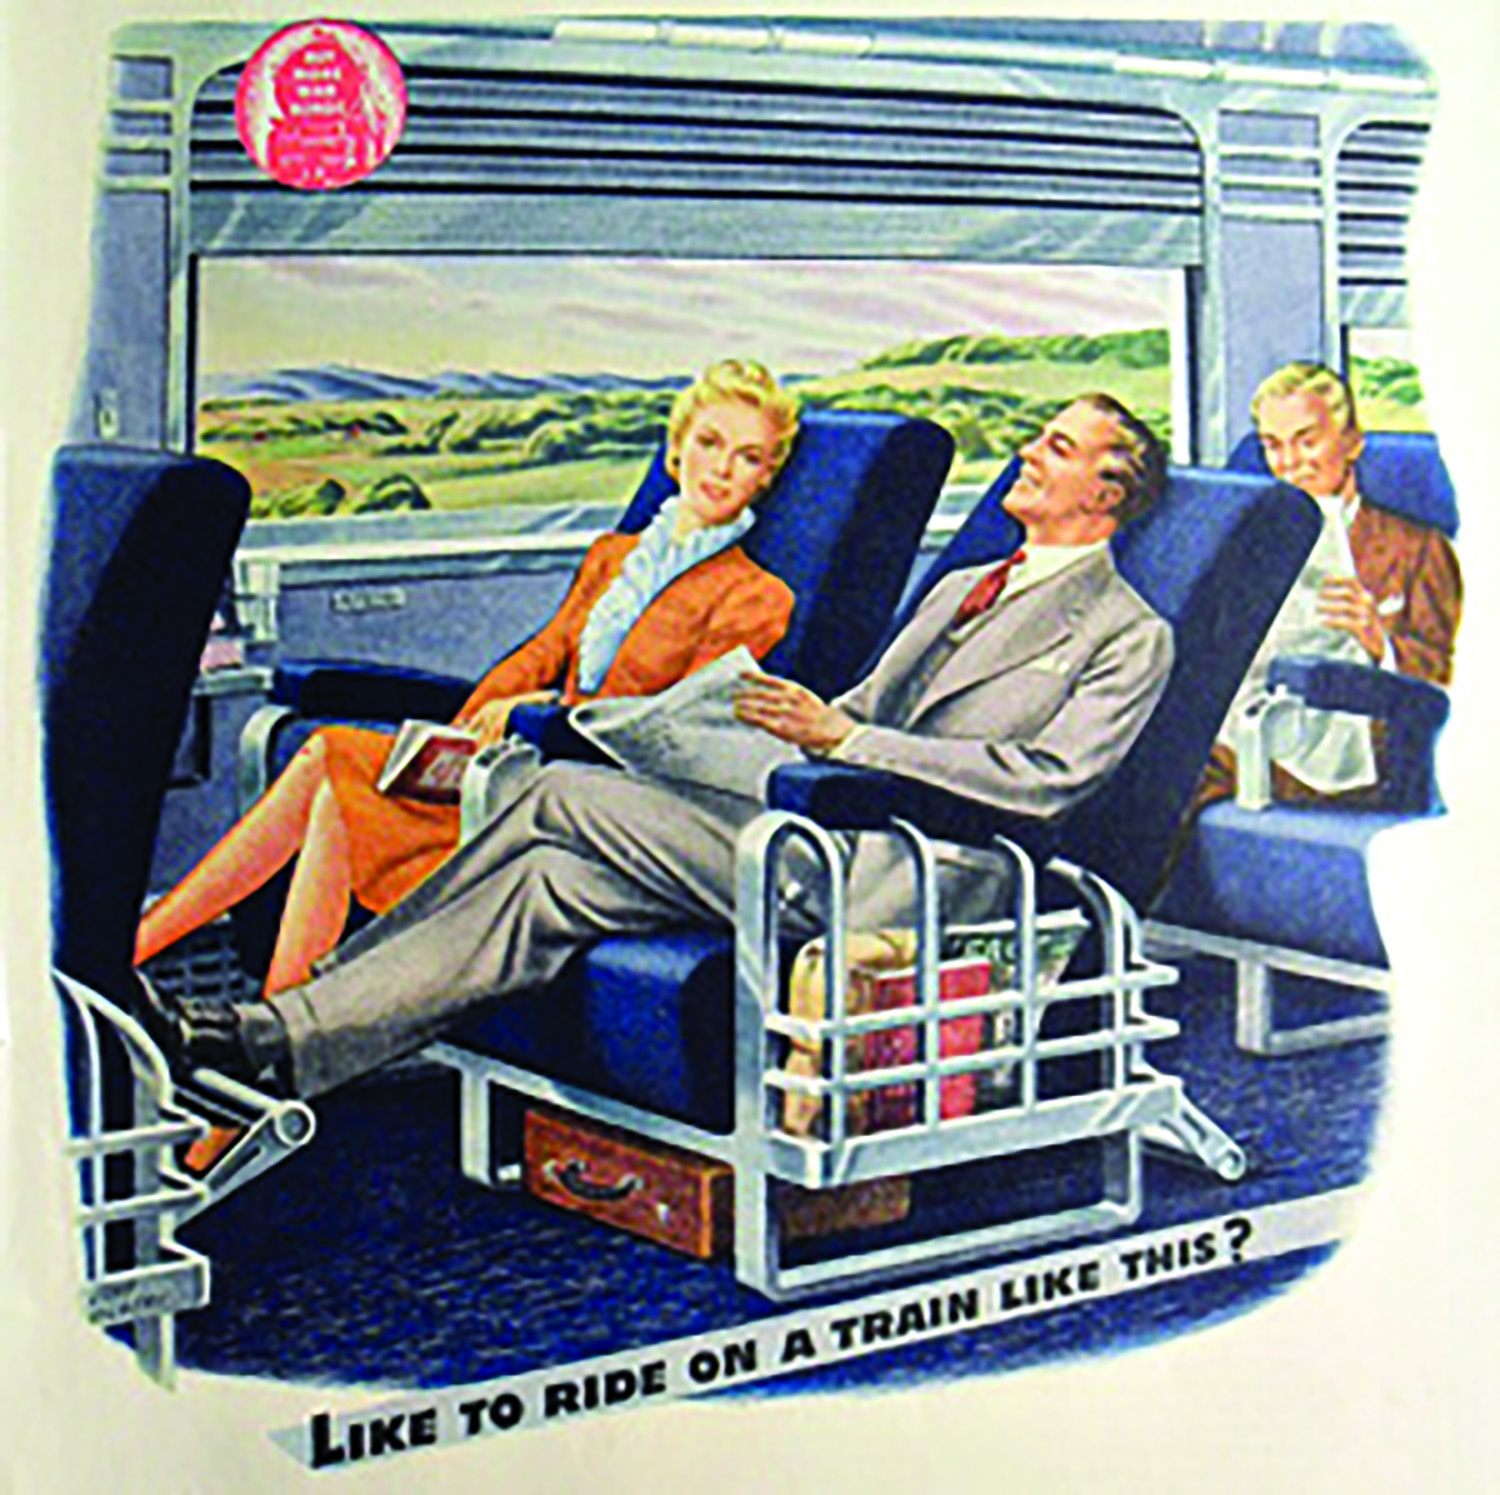 Perhaps Mayor Paul Dyster imagined train travel was still like this.